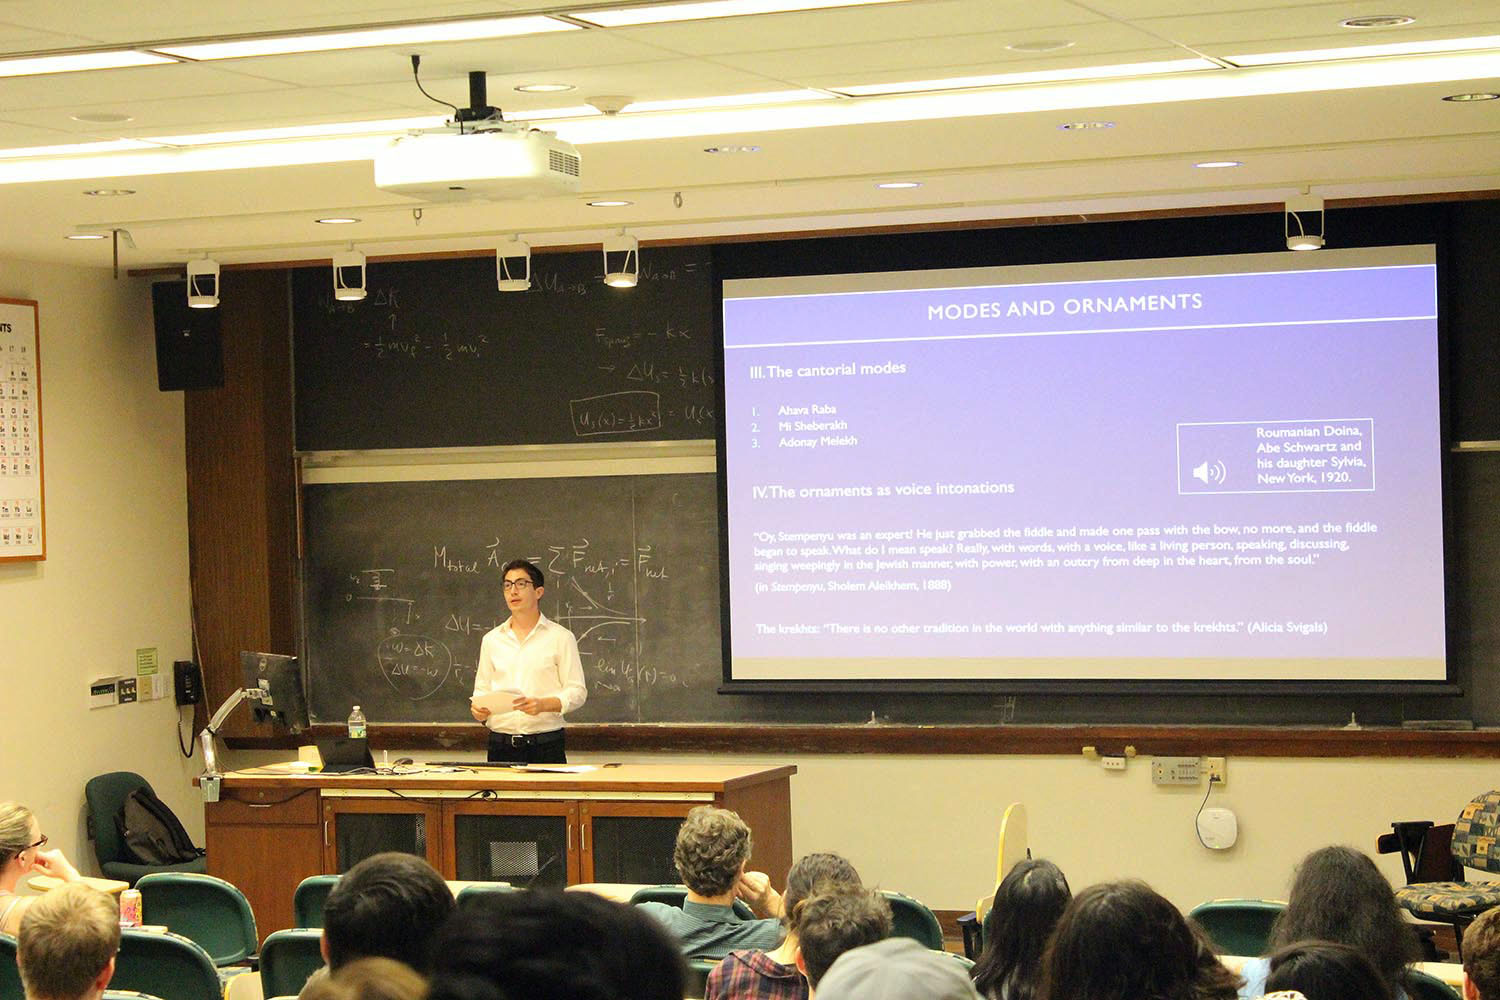 On Oct 10, Douglas Kiman, a second year PhD student in ethnomusicology, presented a Graduate Speaker Series talk titled